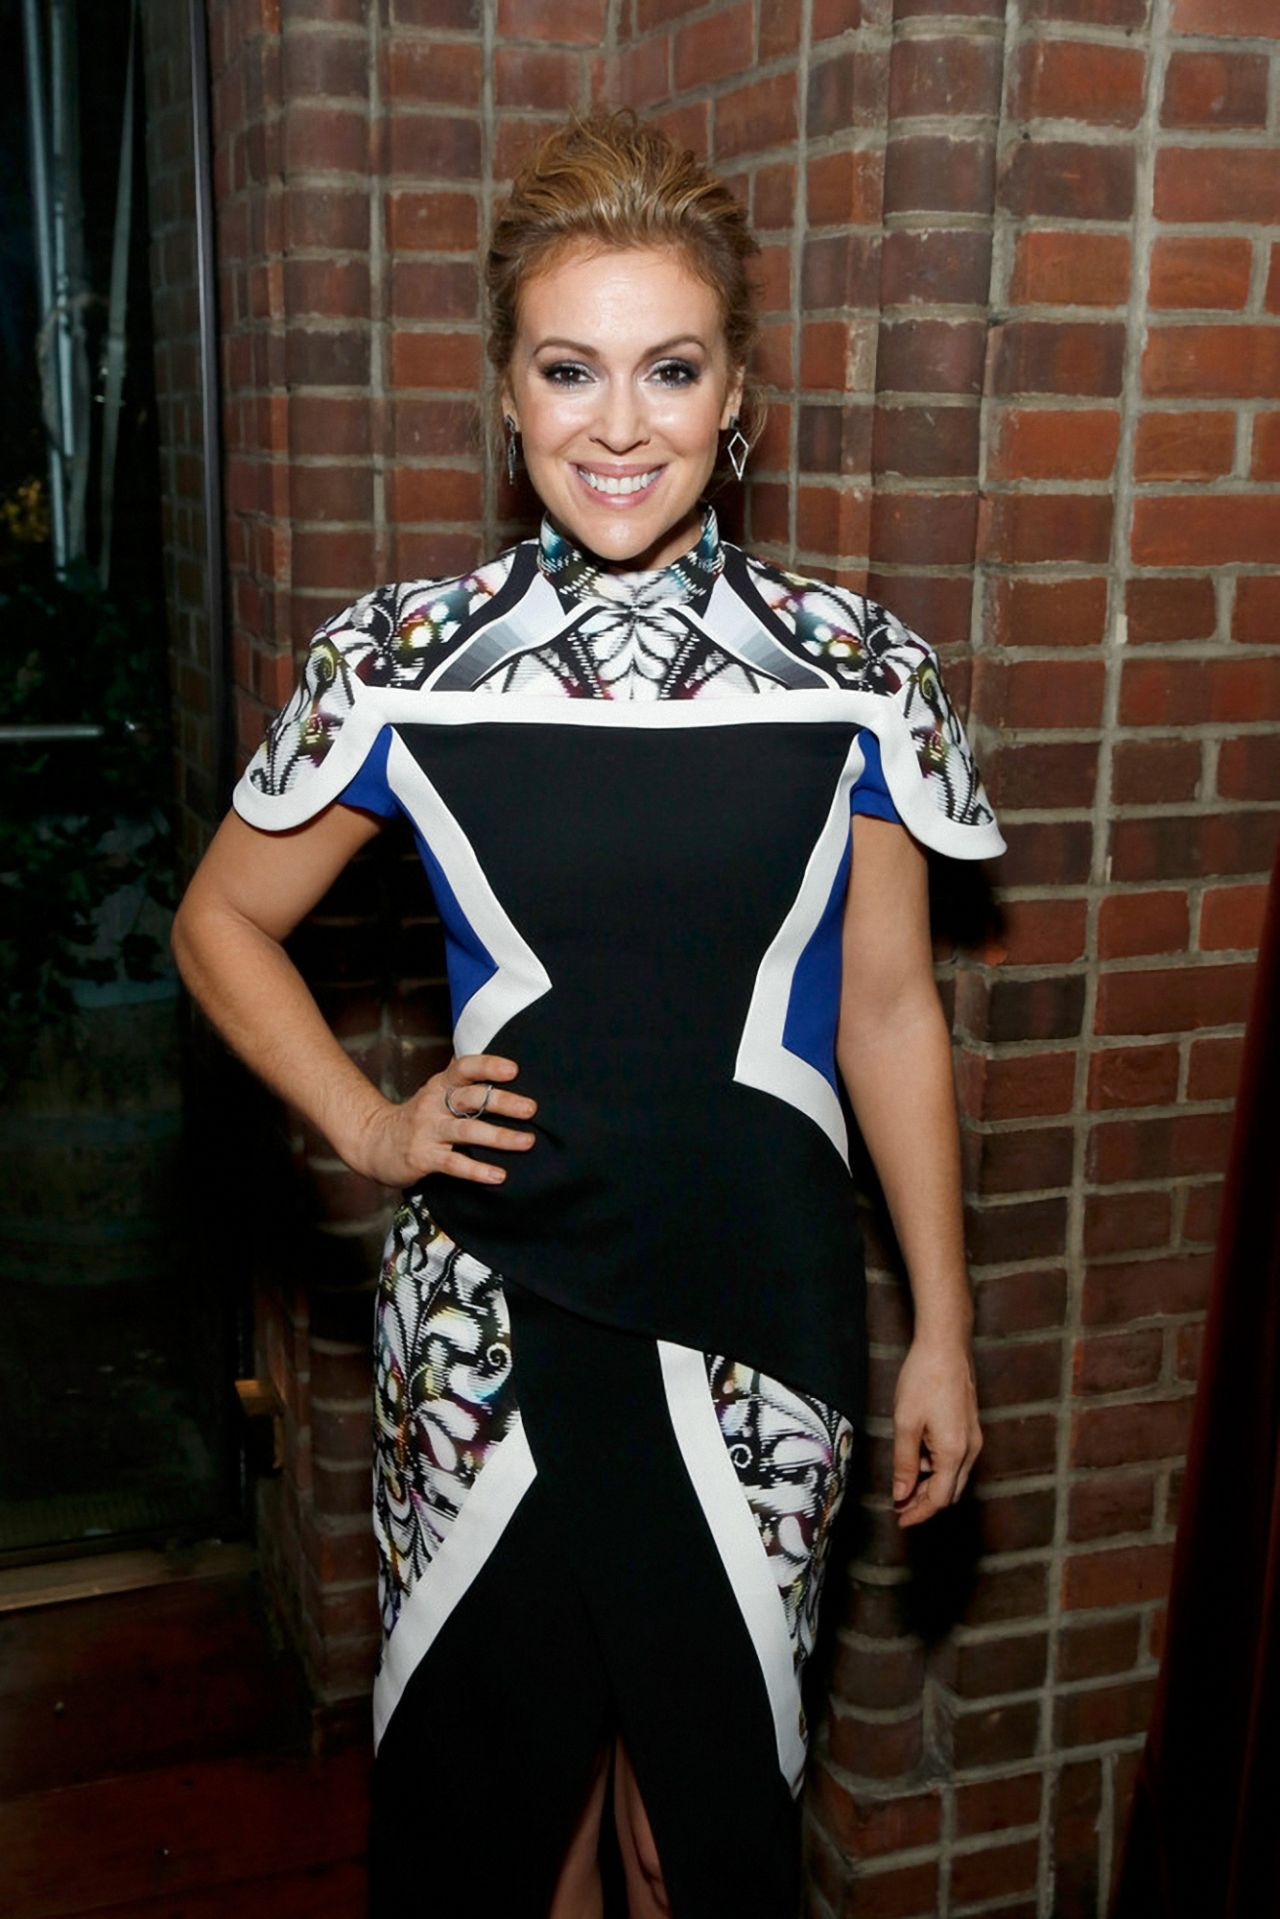 Project runway all stars premiere party host alyssa milano dishes on